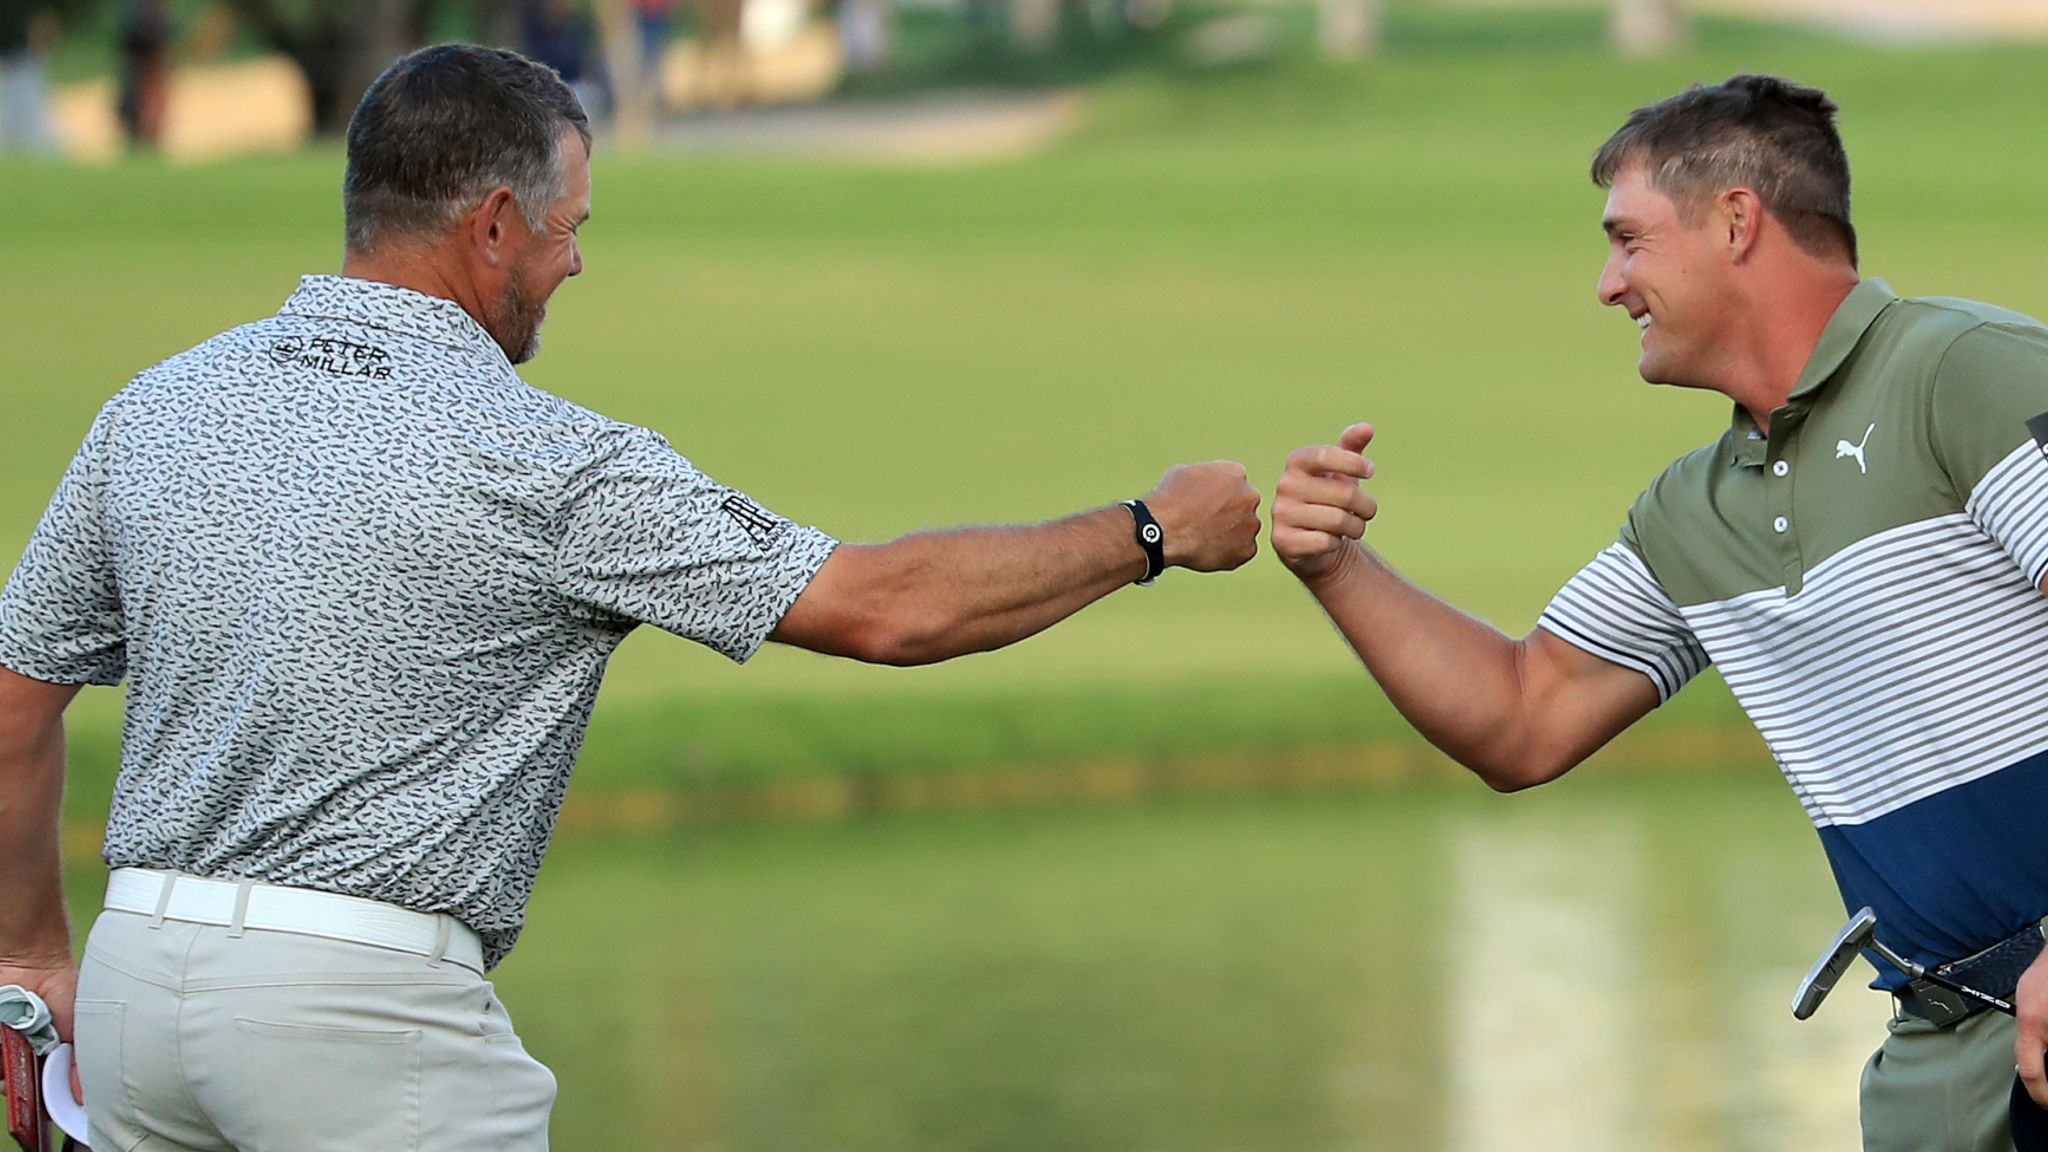 Bryson DeChambeau feels pace of play is improving after strong start